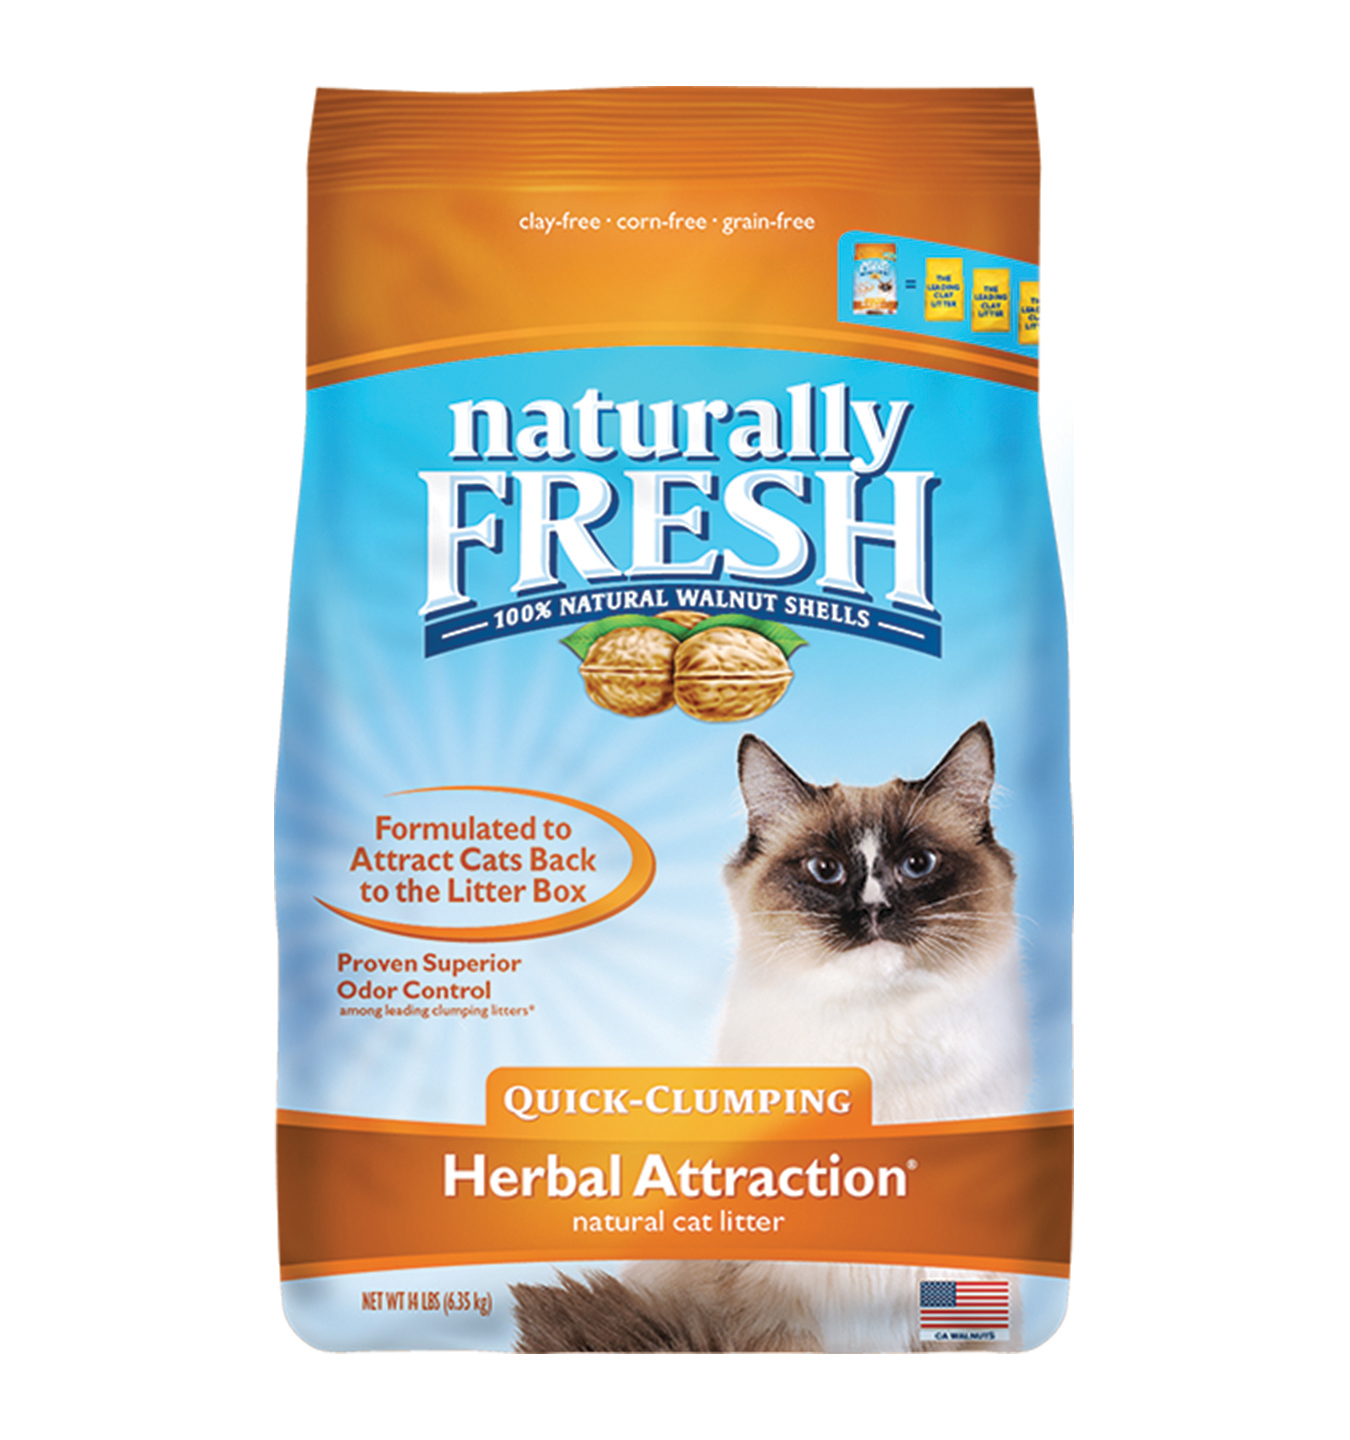 Naturally Fresh Walnut-Based Herbal Attraction Quick-Clumping Cat Litter, 14-lb bag